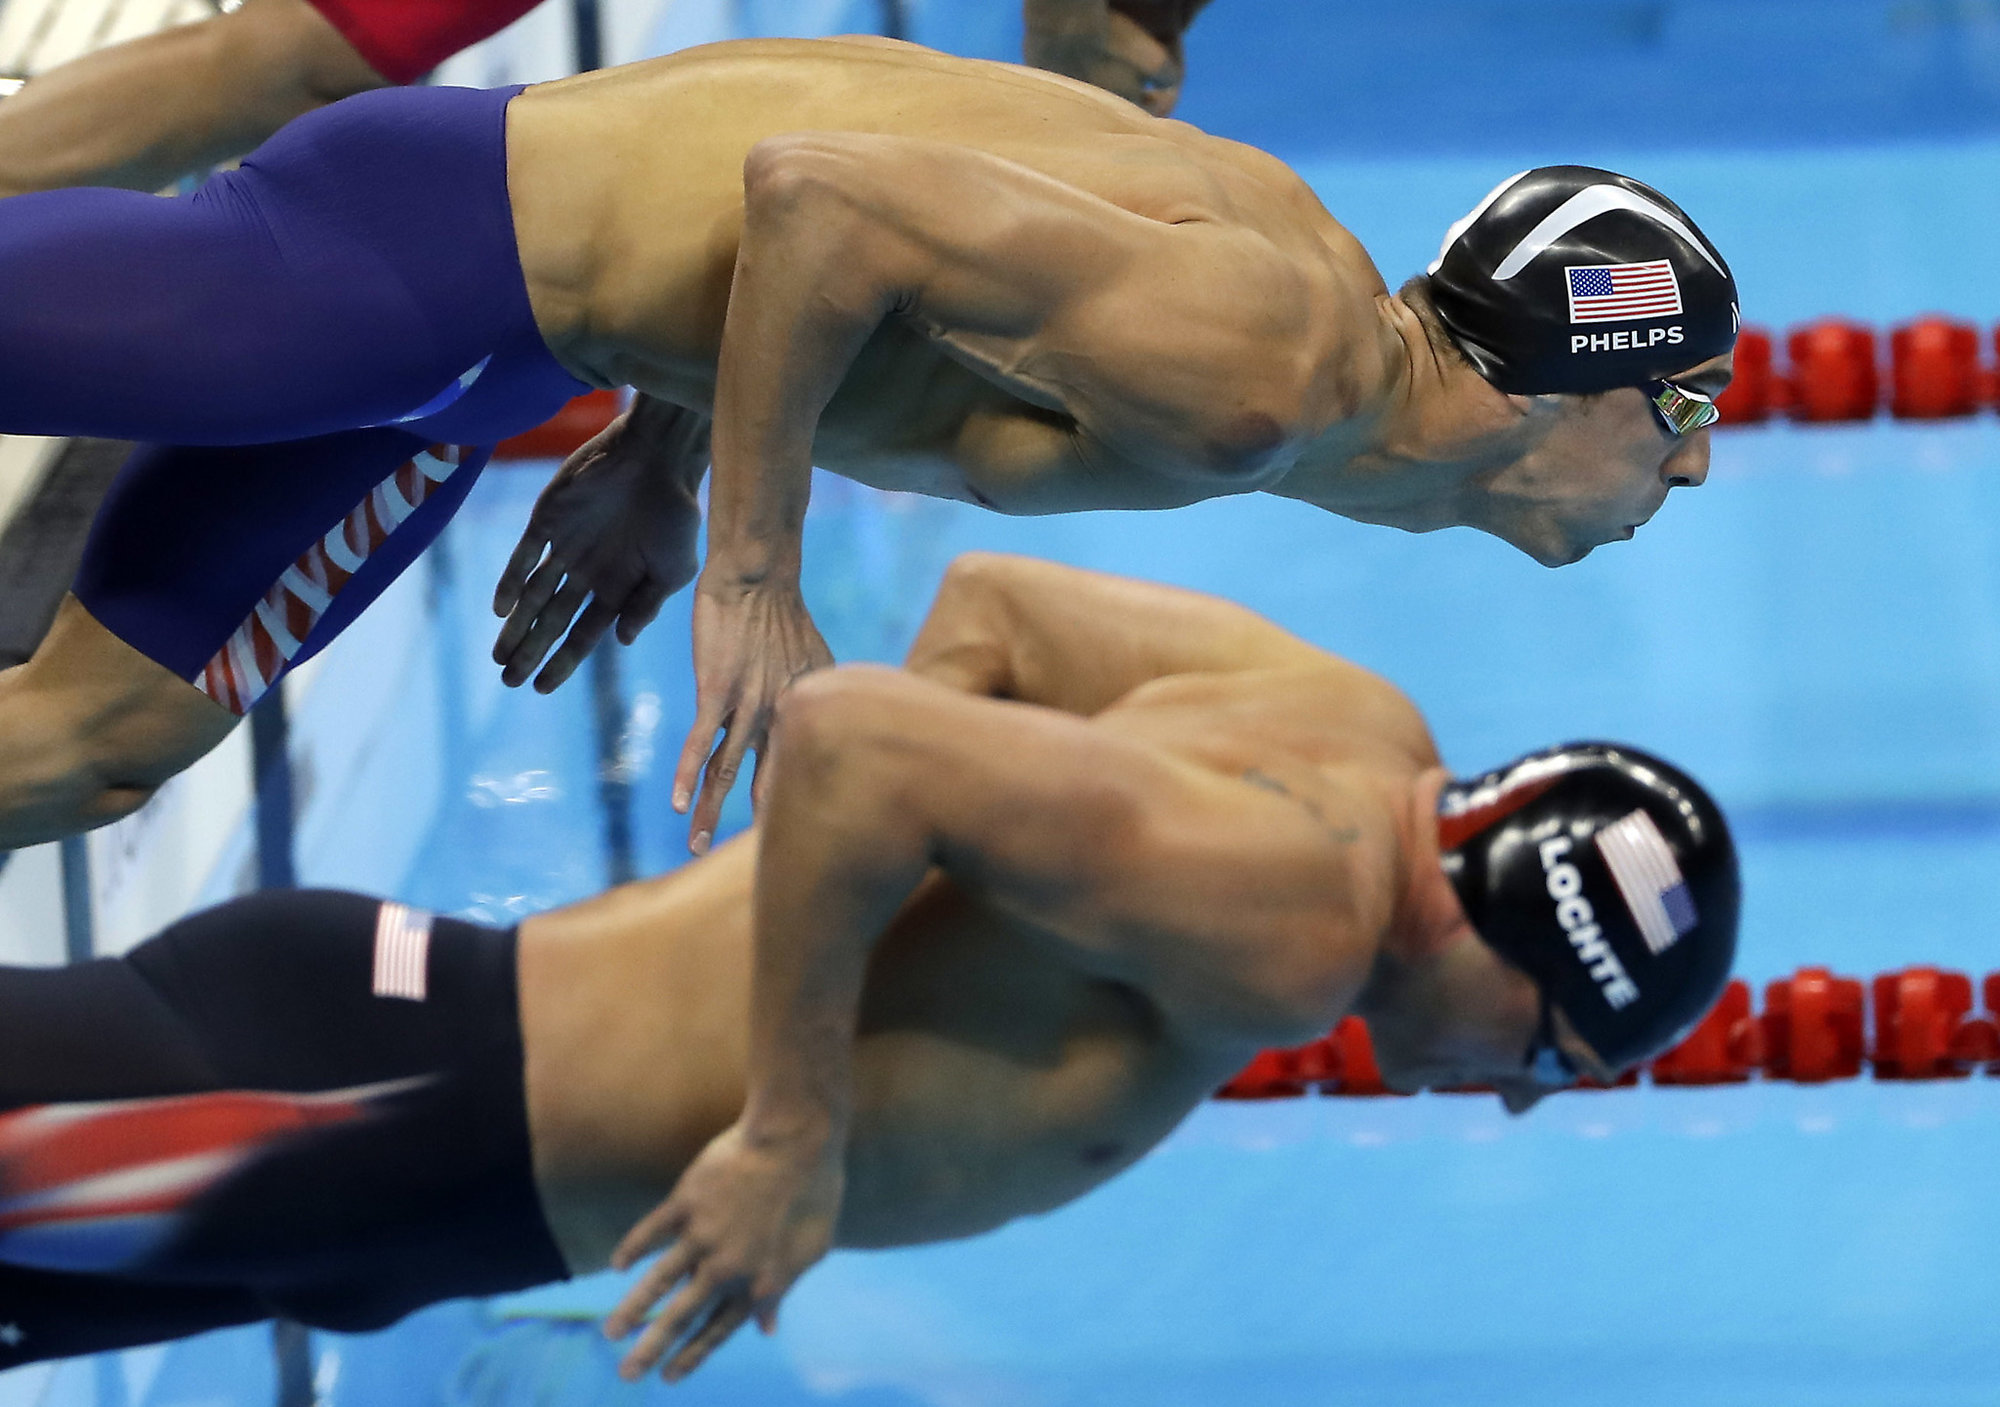 michael phelps vs ryan lochte at ri olympics